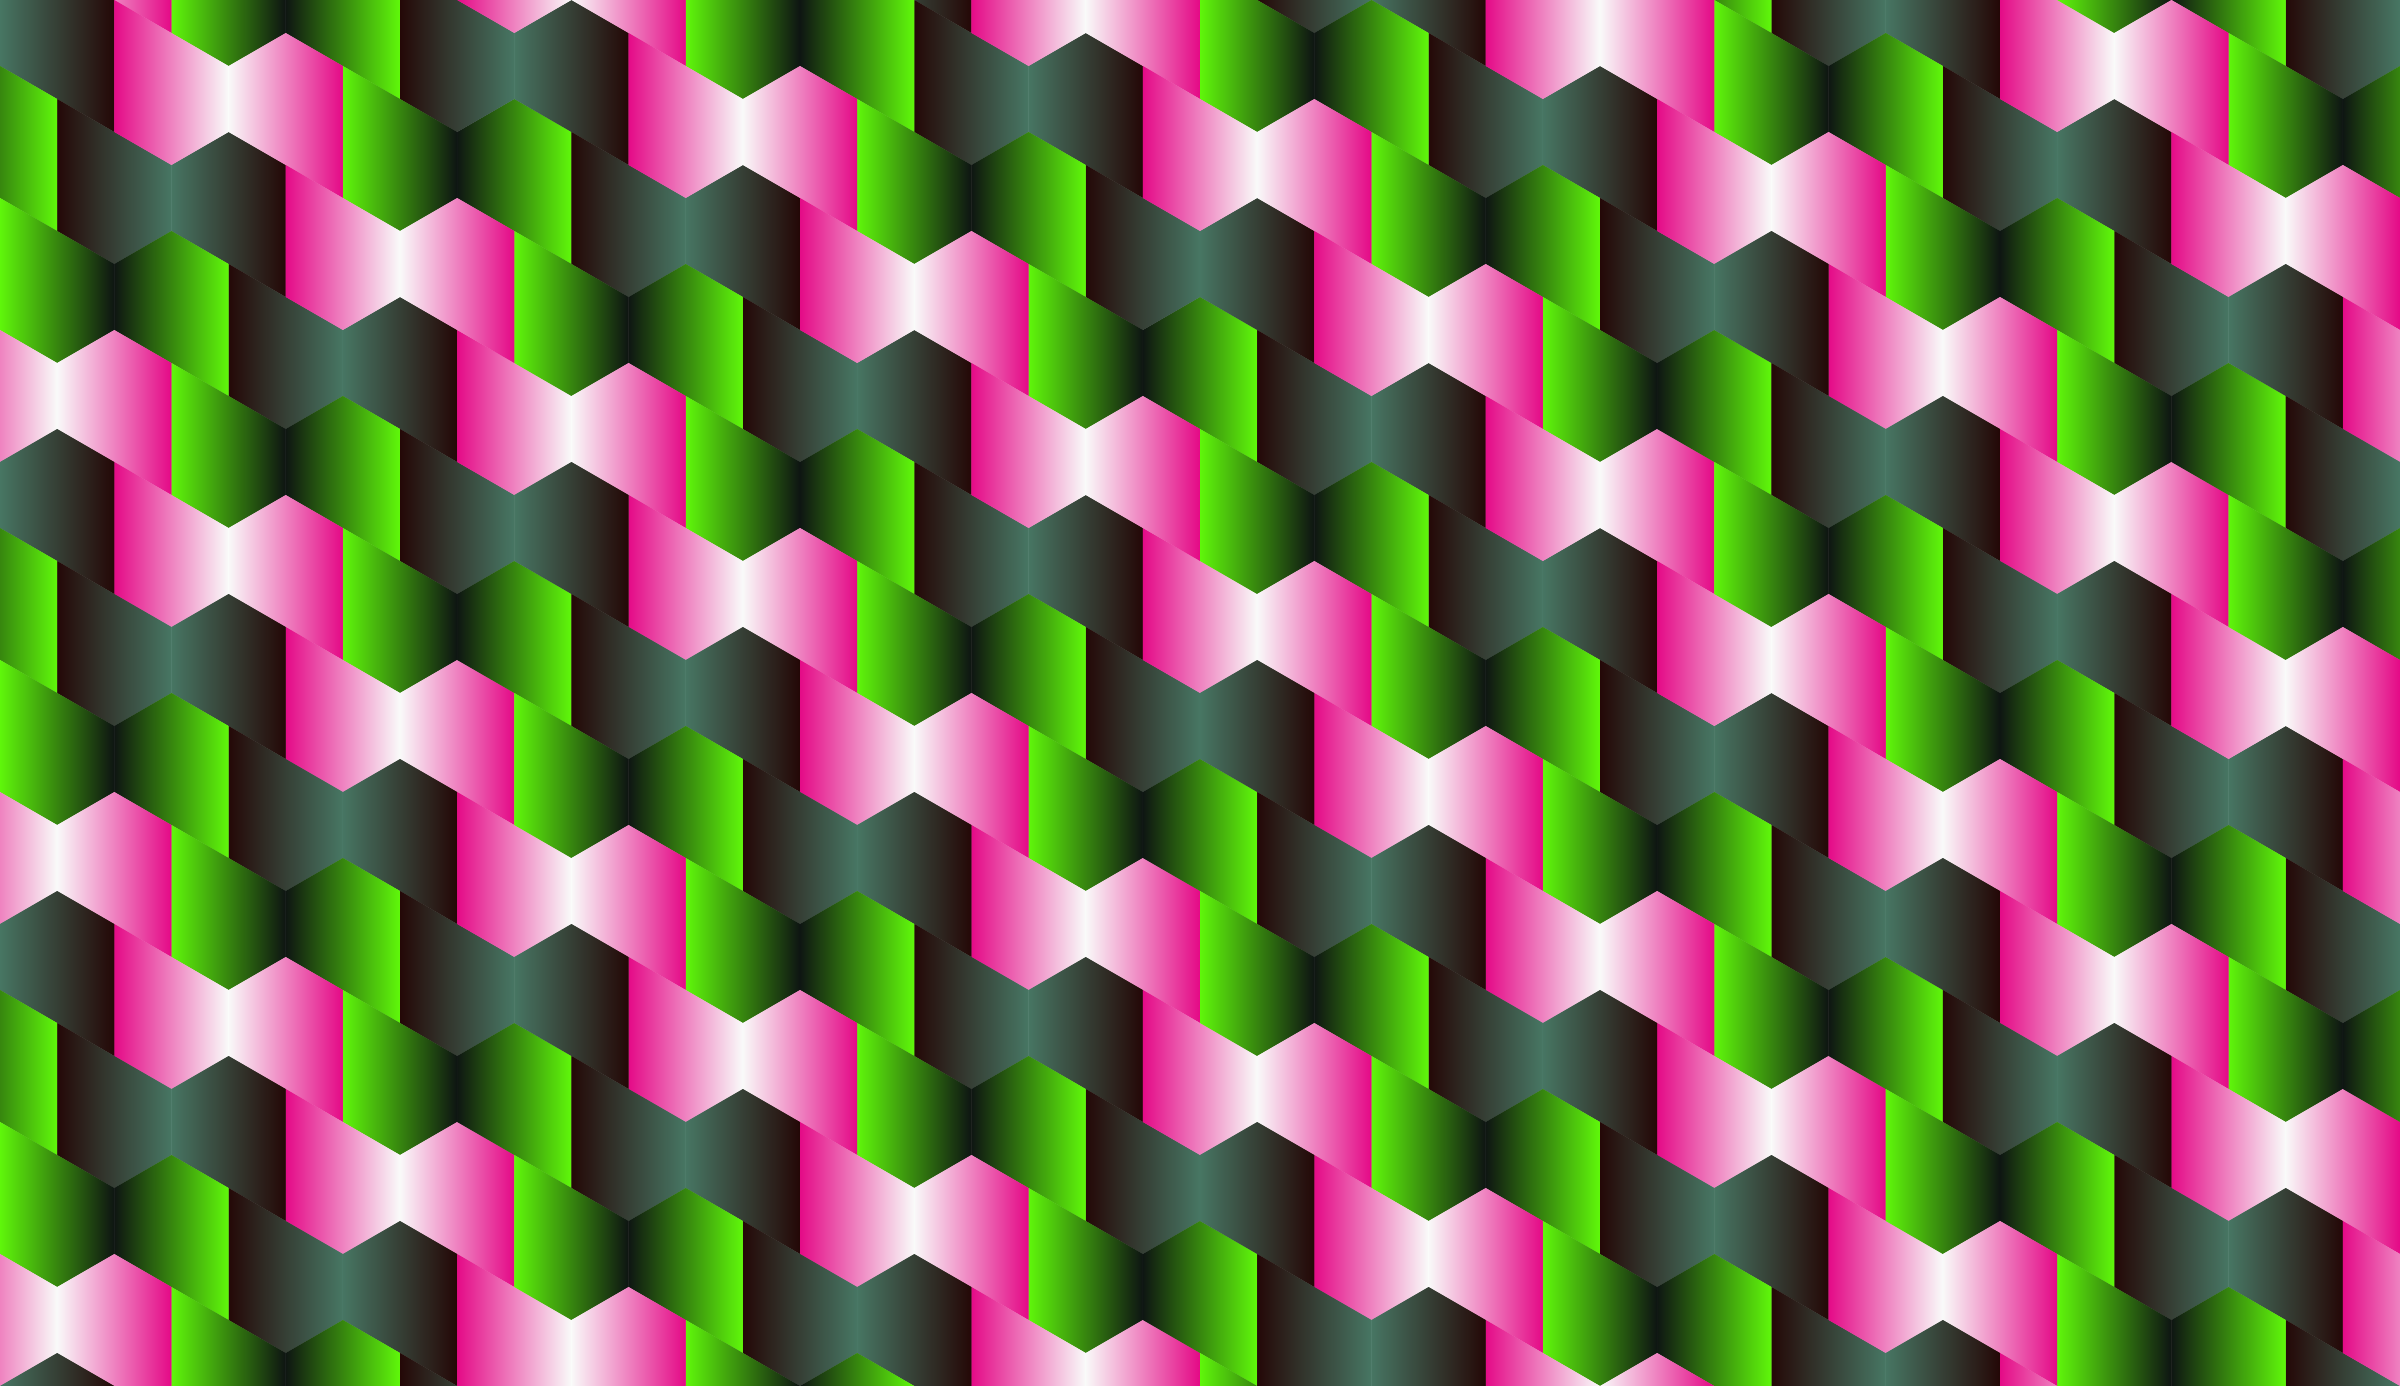 Tessellation by Firkin